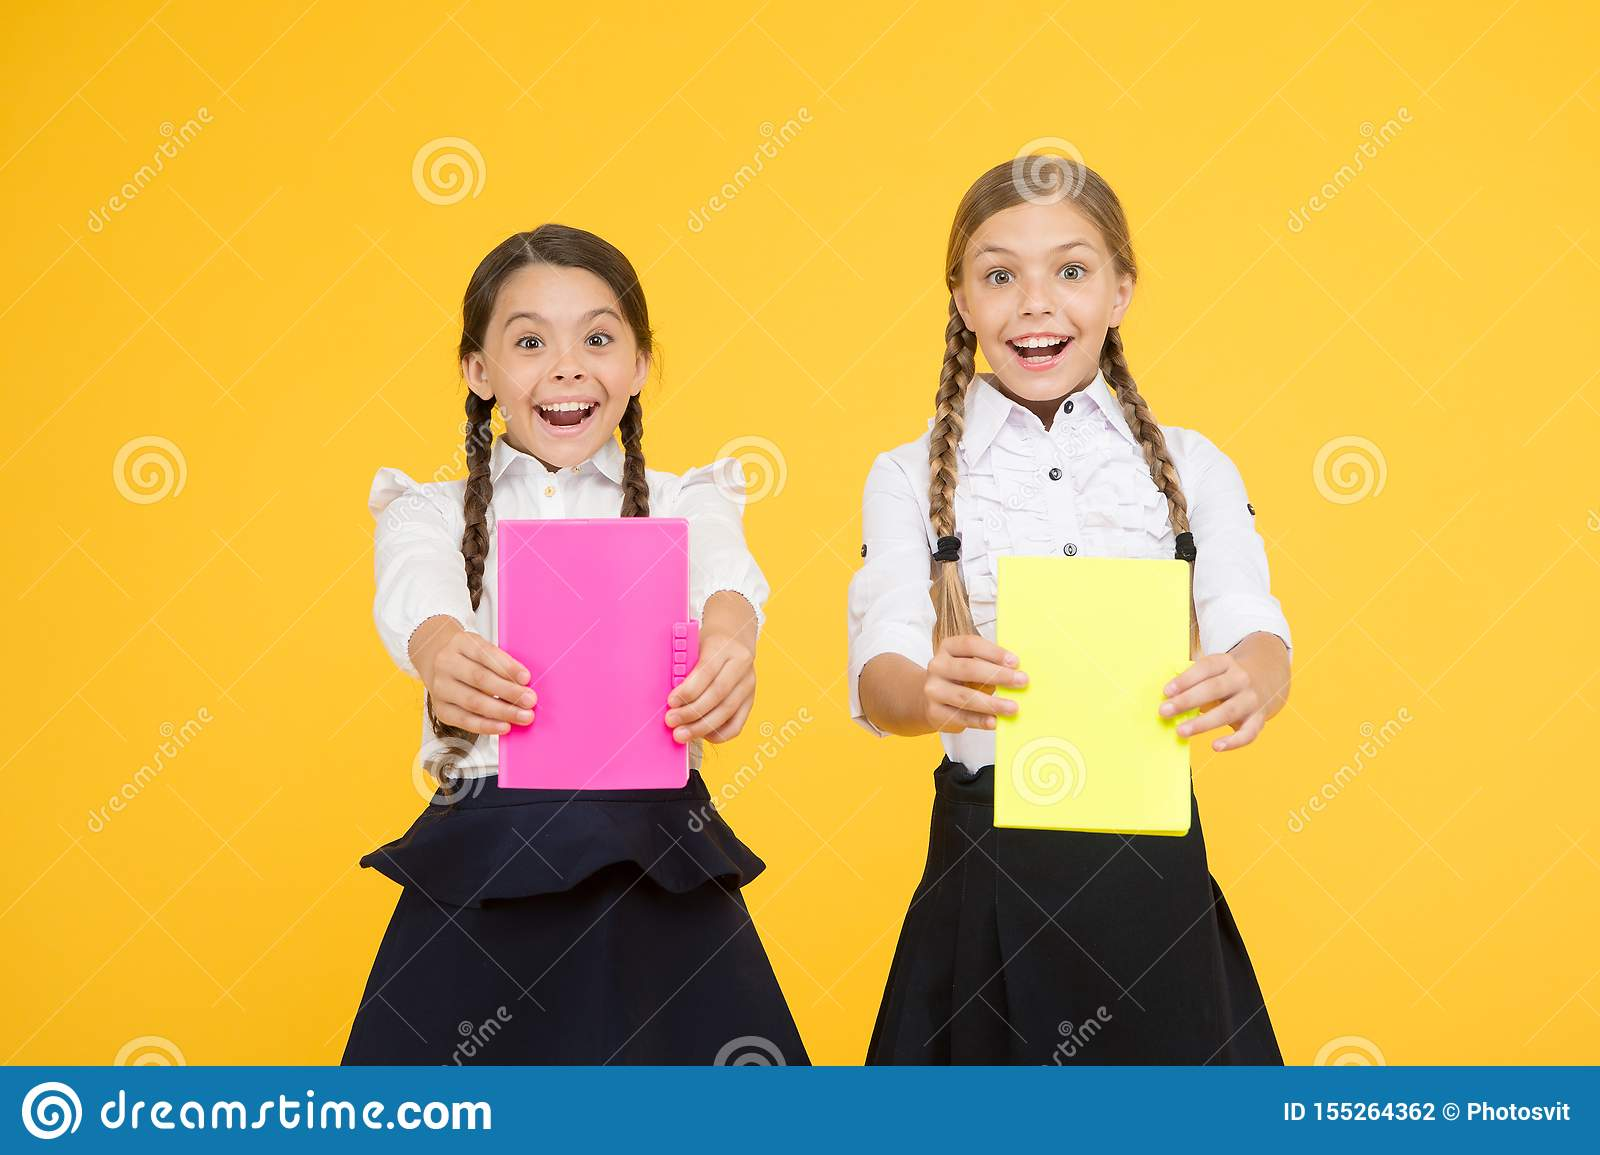 Babes in Bookland. cheerful classmates with workbook. reading story. childrens literature. kids learning grammar. back